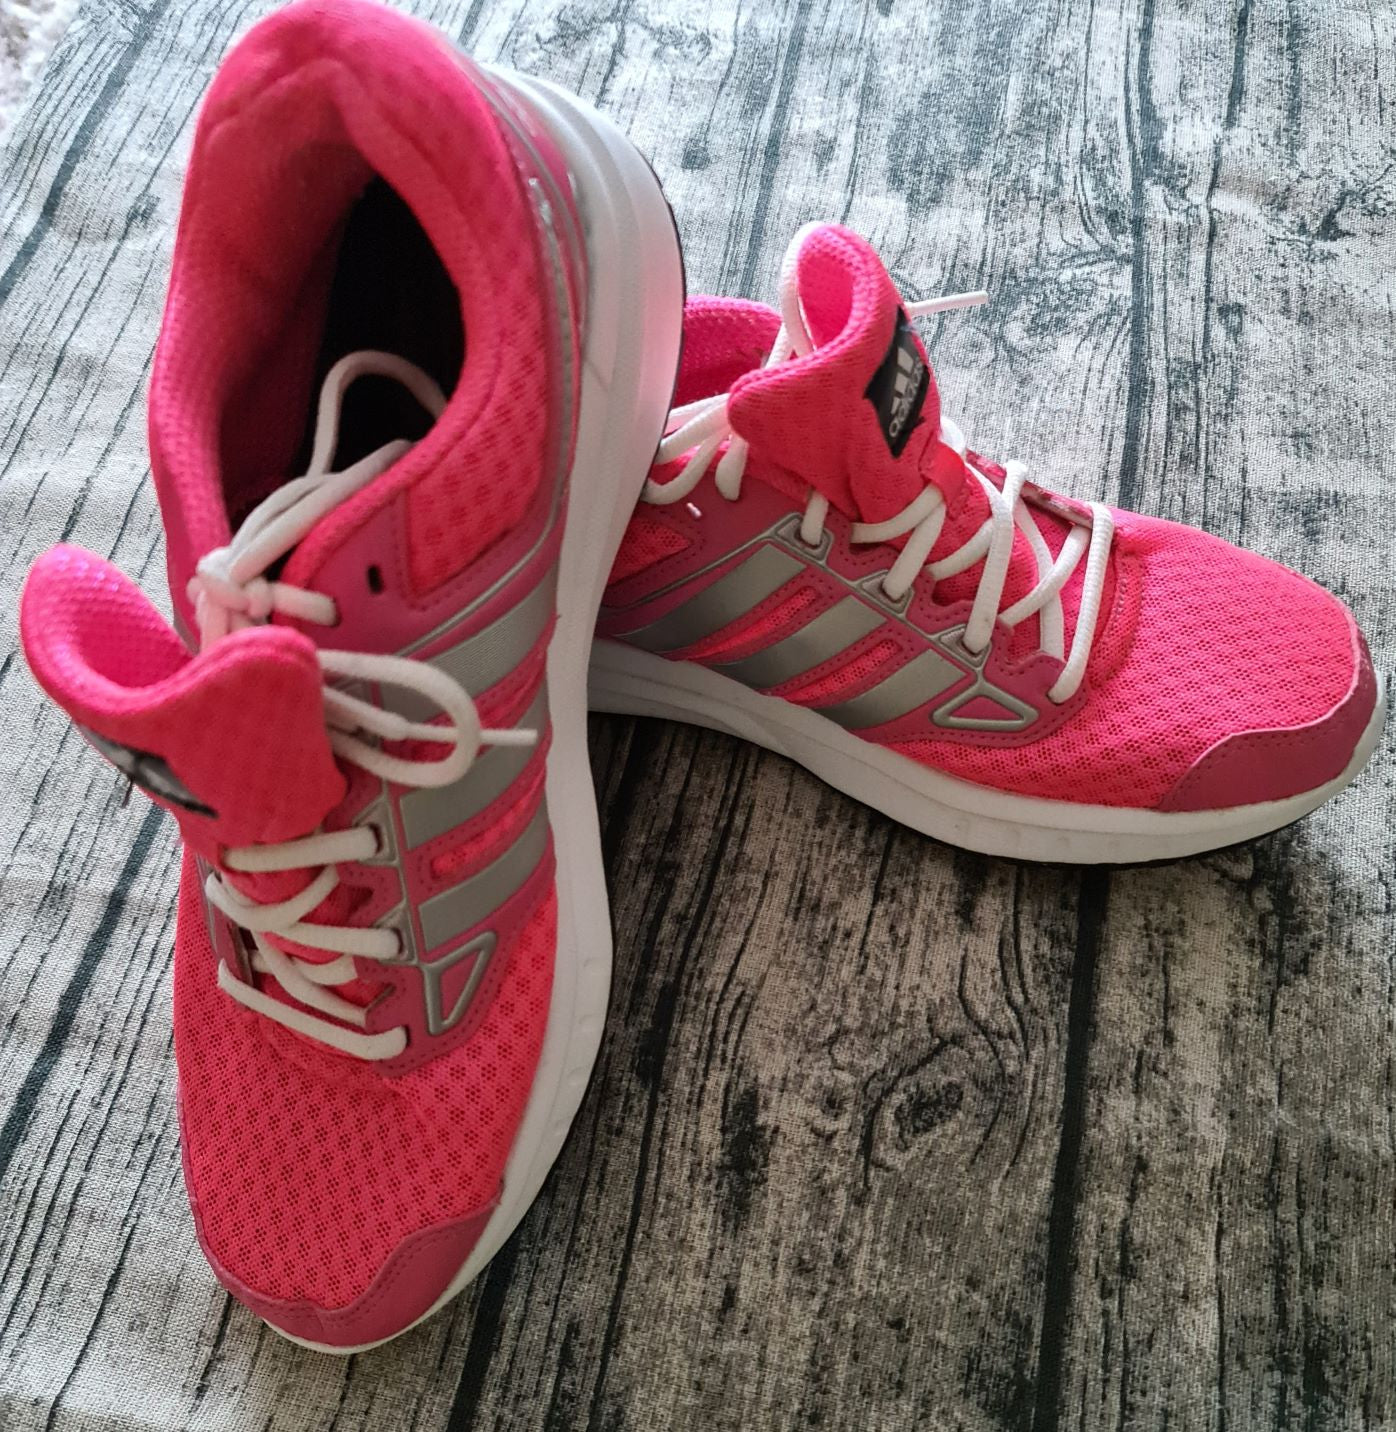 Adidas Womens Trainers size: 7 UK Pink